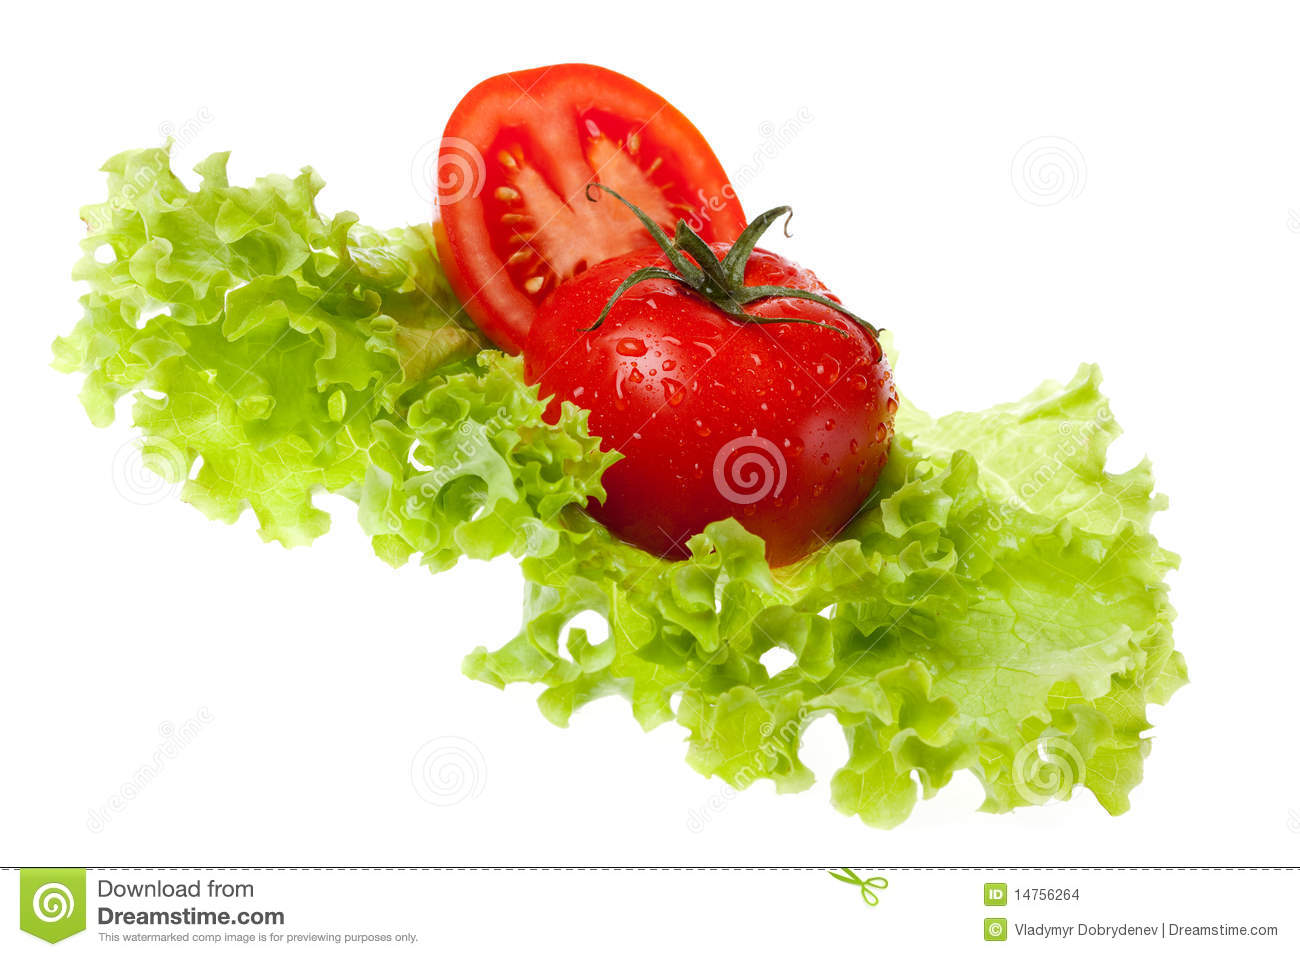 how to cut tomatoes for salad